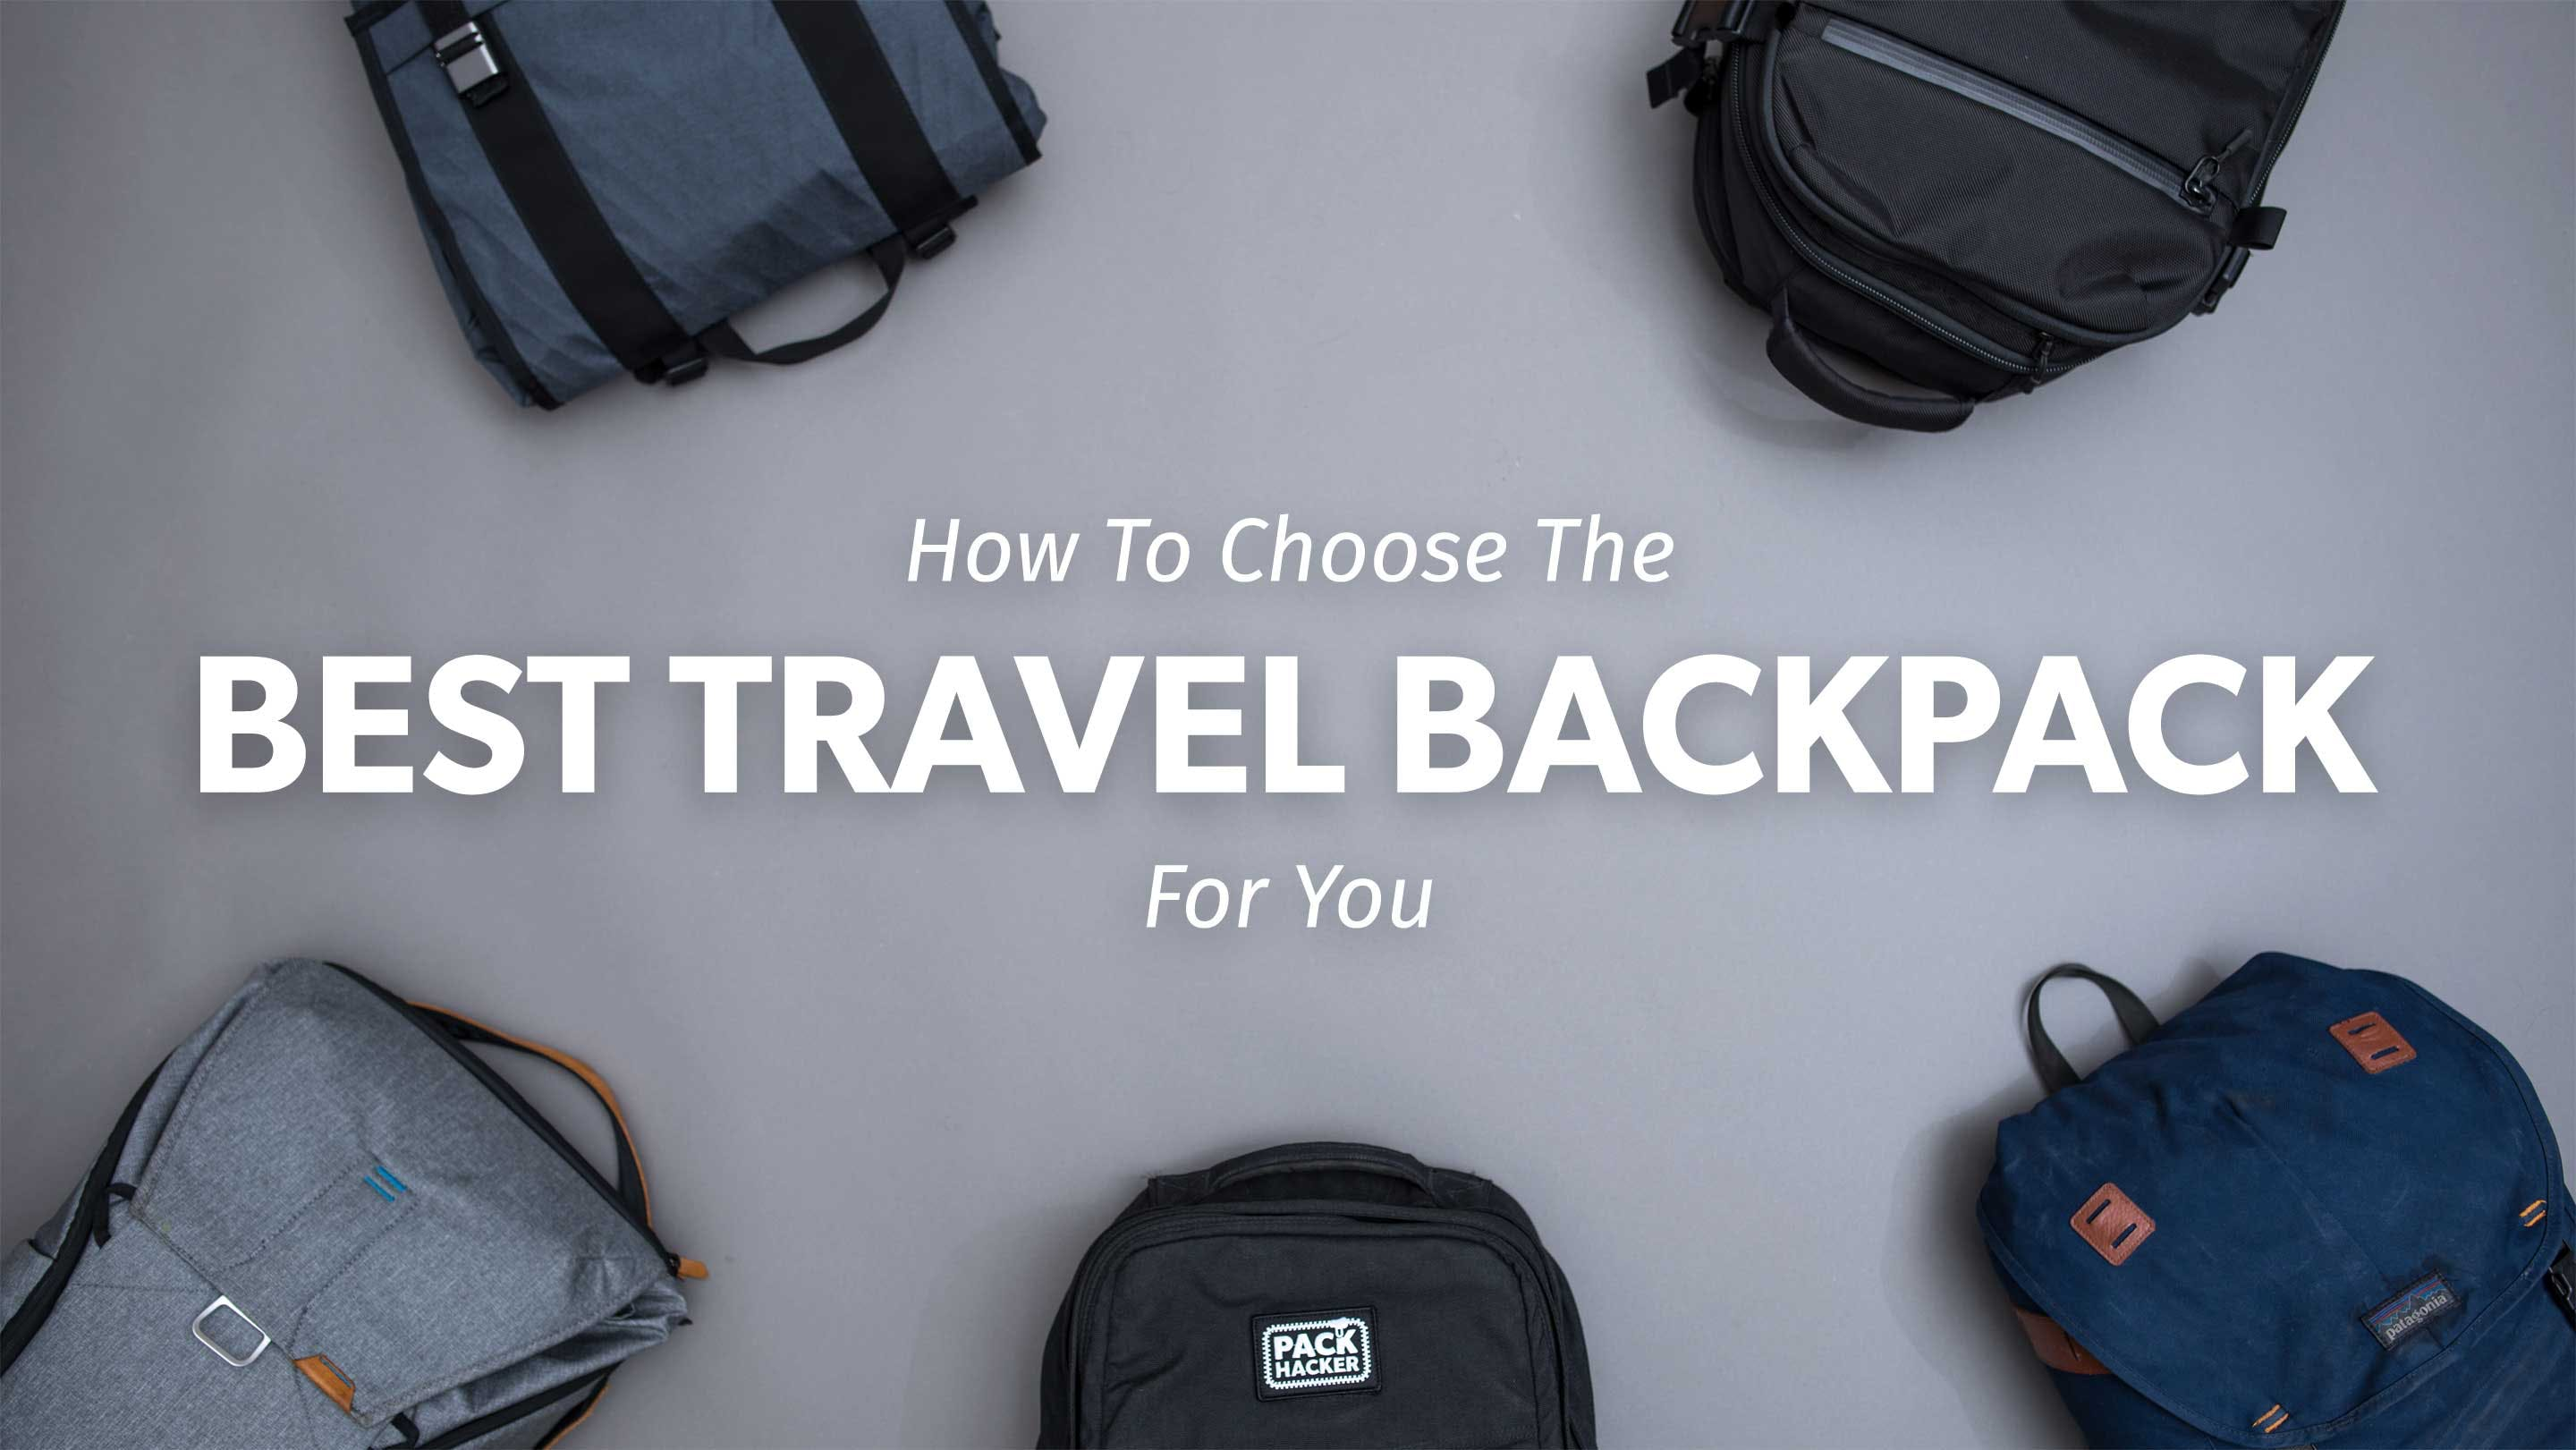 206c5be9ec52 Best Travel Backpack  How To Pick In 2019